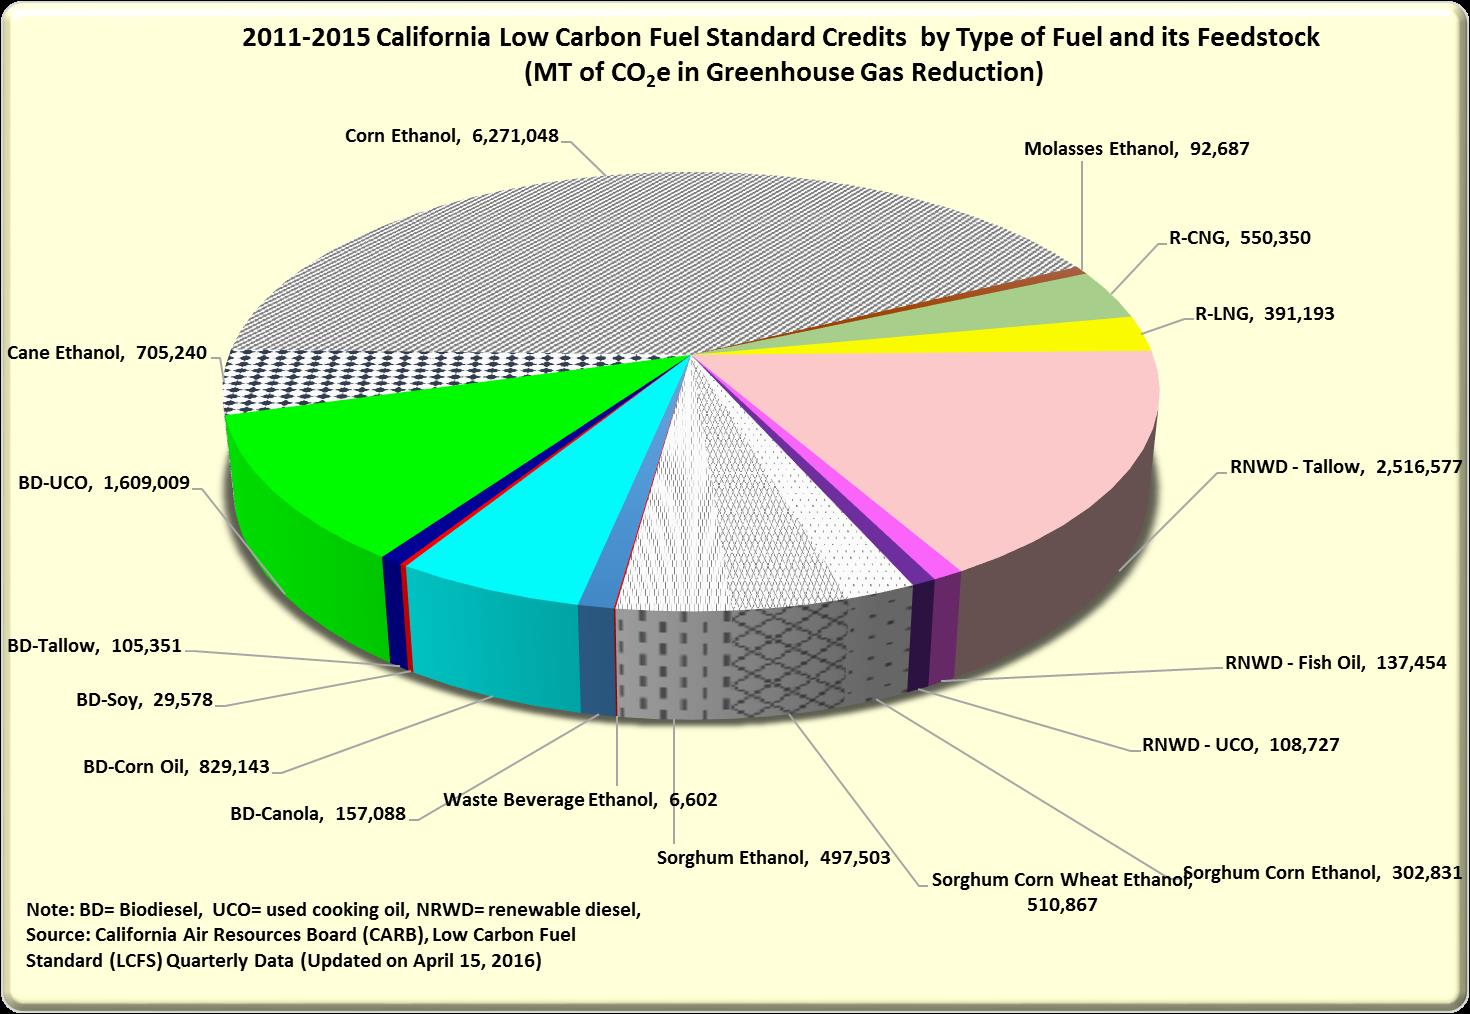 2011-2015 California Low Carbon Fuel Standard Credits by Type